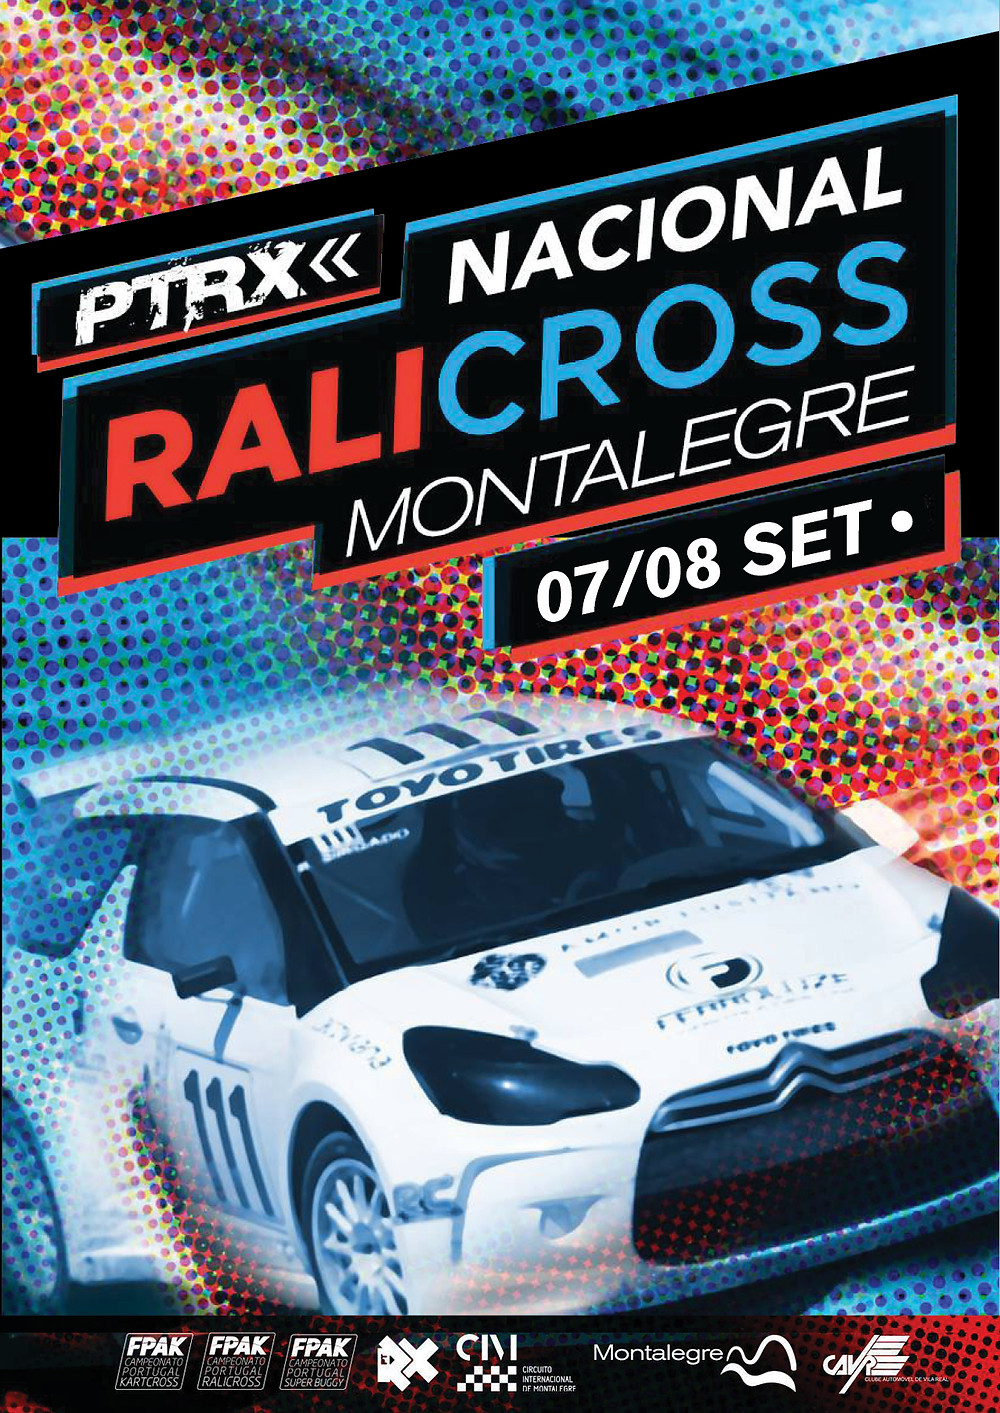 Cartaz Ralicross Montalegre| Peneda Gerês TV